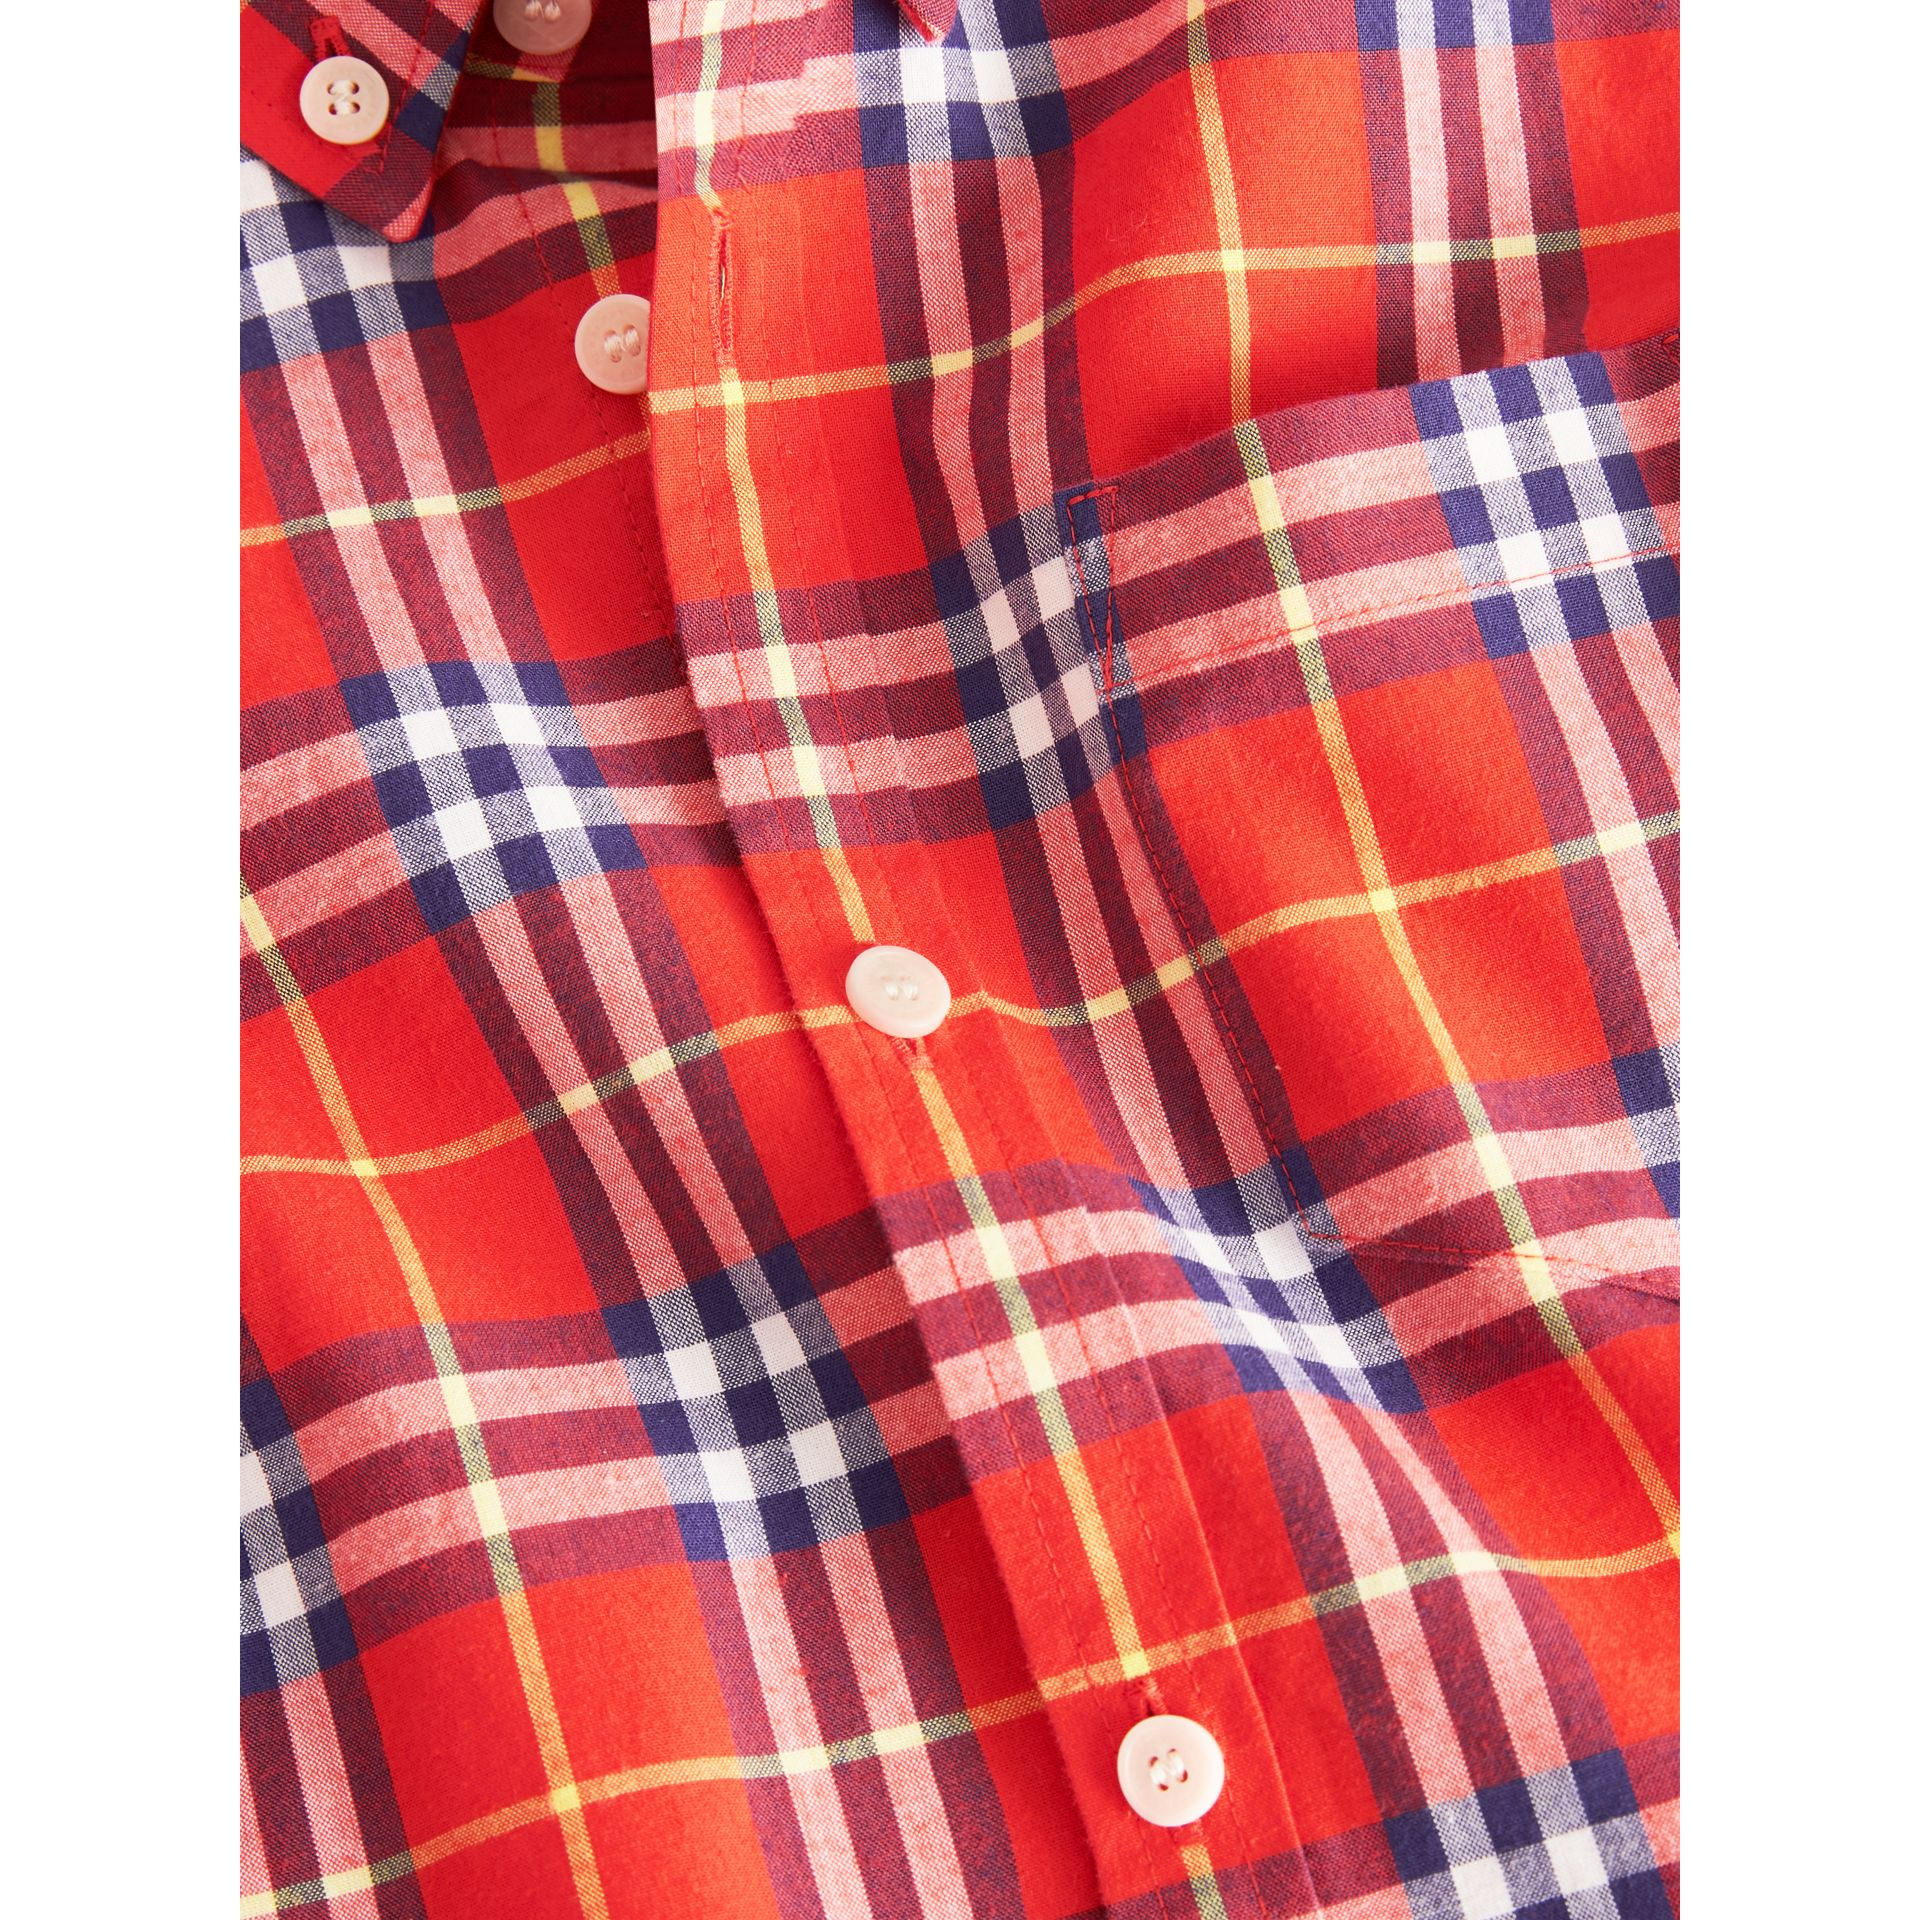 Button-down Collar Check Flannel Shirt in Orange Red | Burberry United Kingdom - gallery image 1